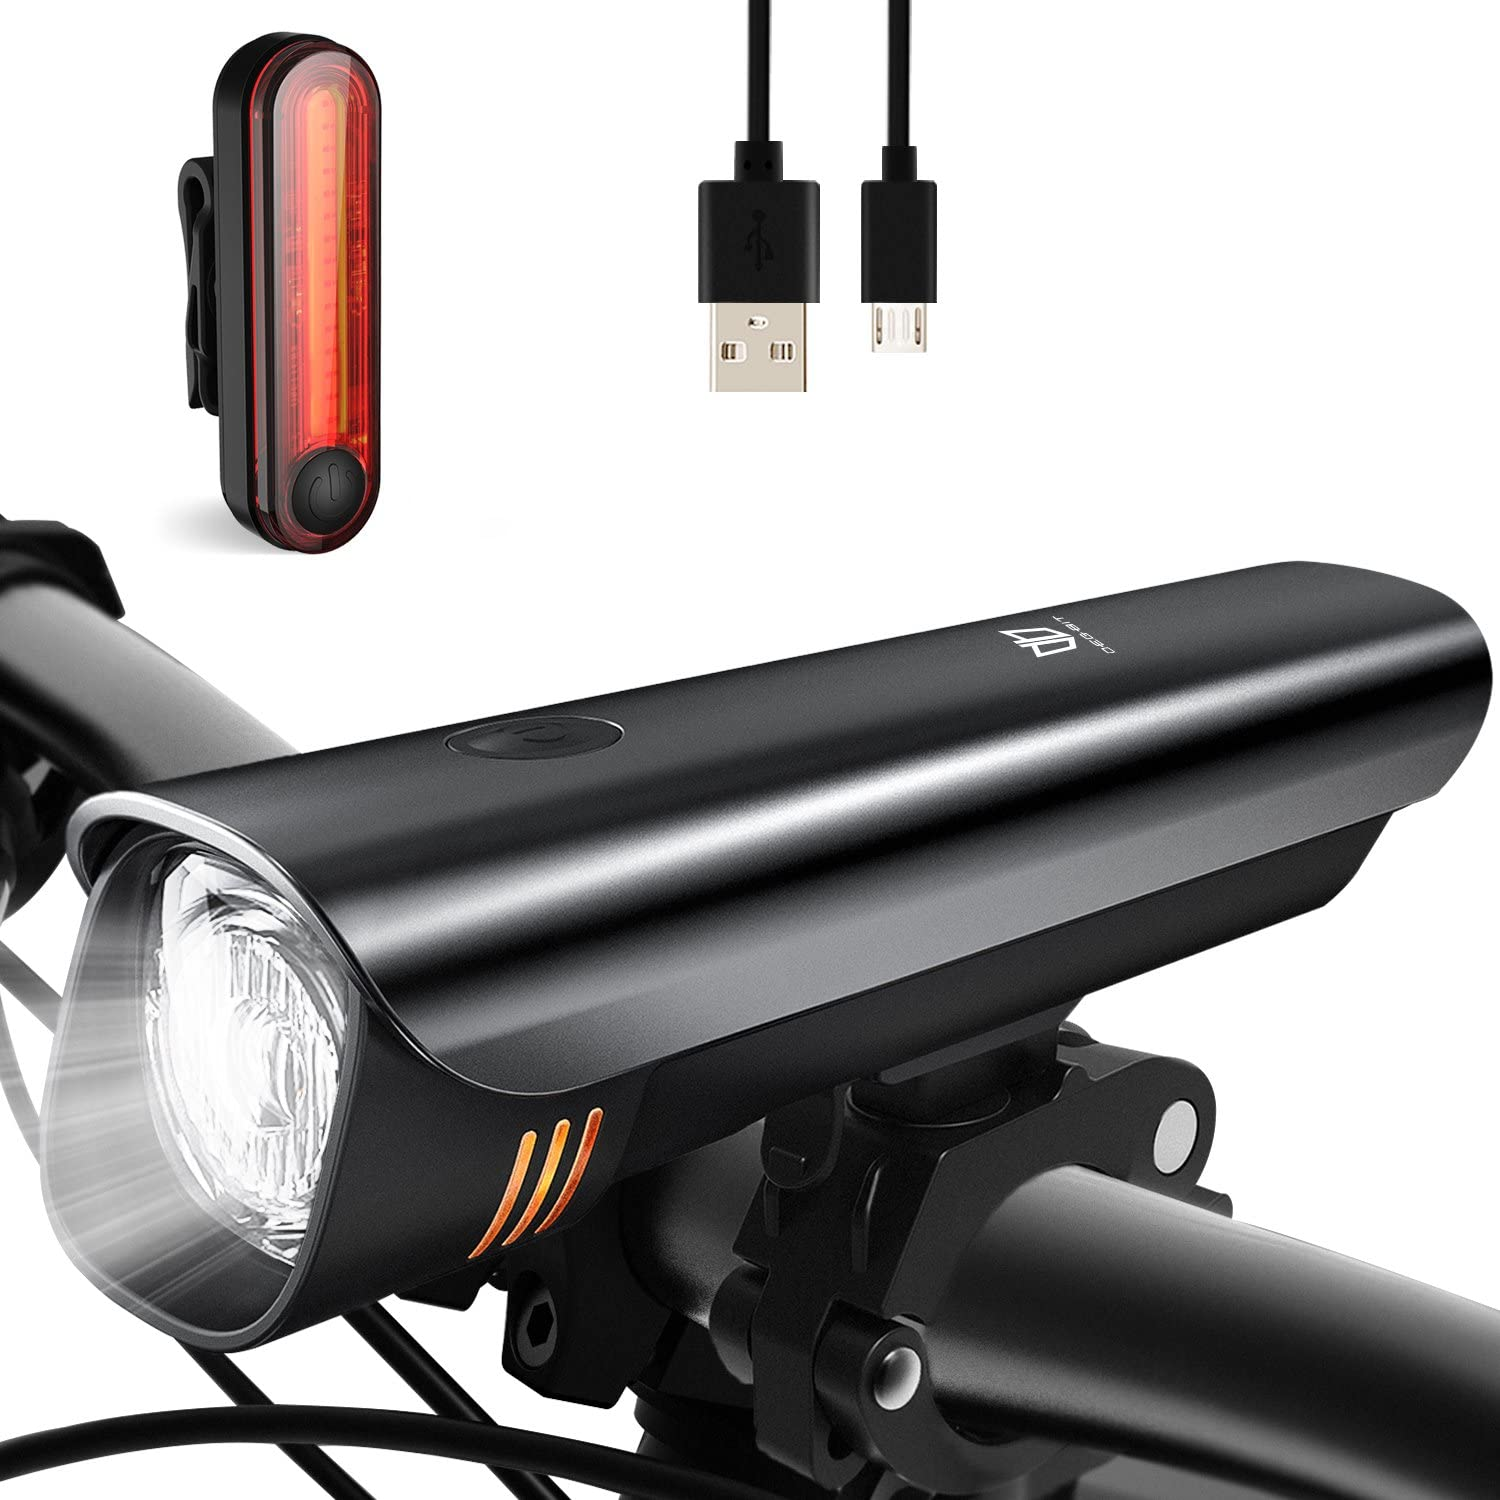 Anti-glare Safety Bike Lights Front and Back, DB DEGBIT Waterproof USB Rechargeable LED Bicycle Light Set, Powerful 4-mode Bright Headlight Free Rear Light, Easy Install Release Cycling Flashlight